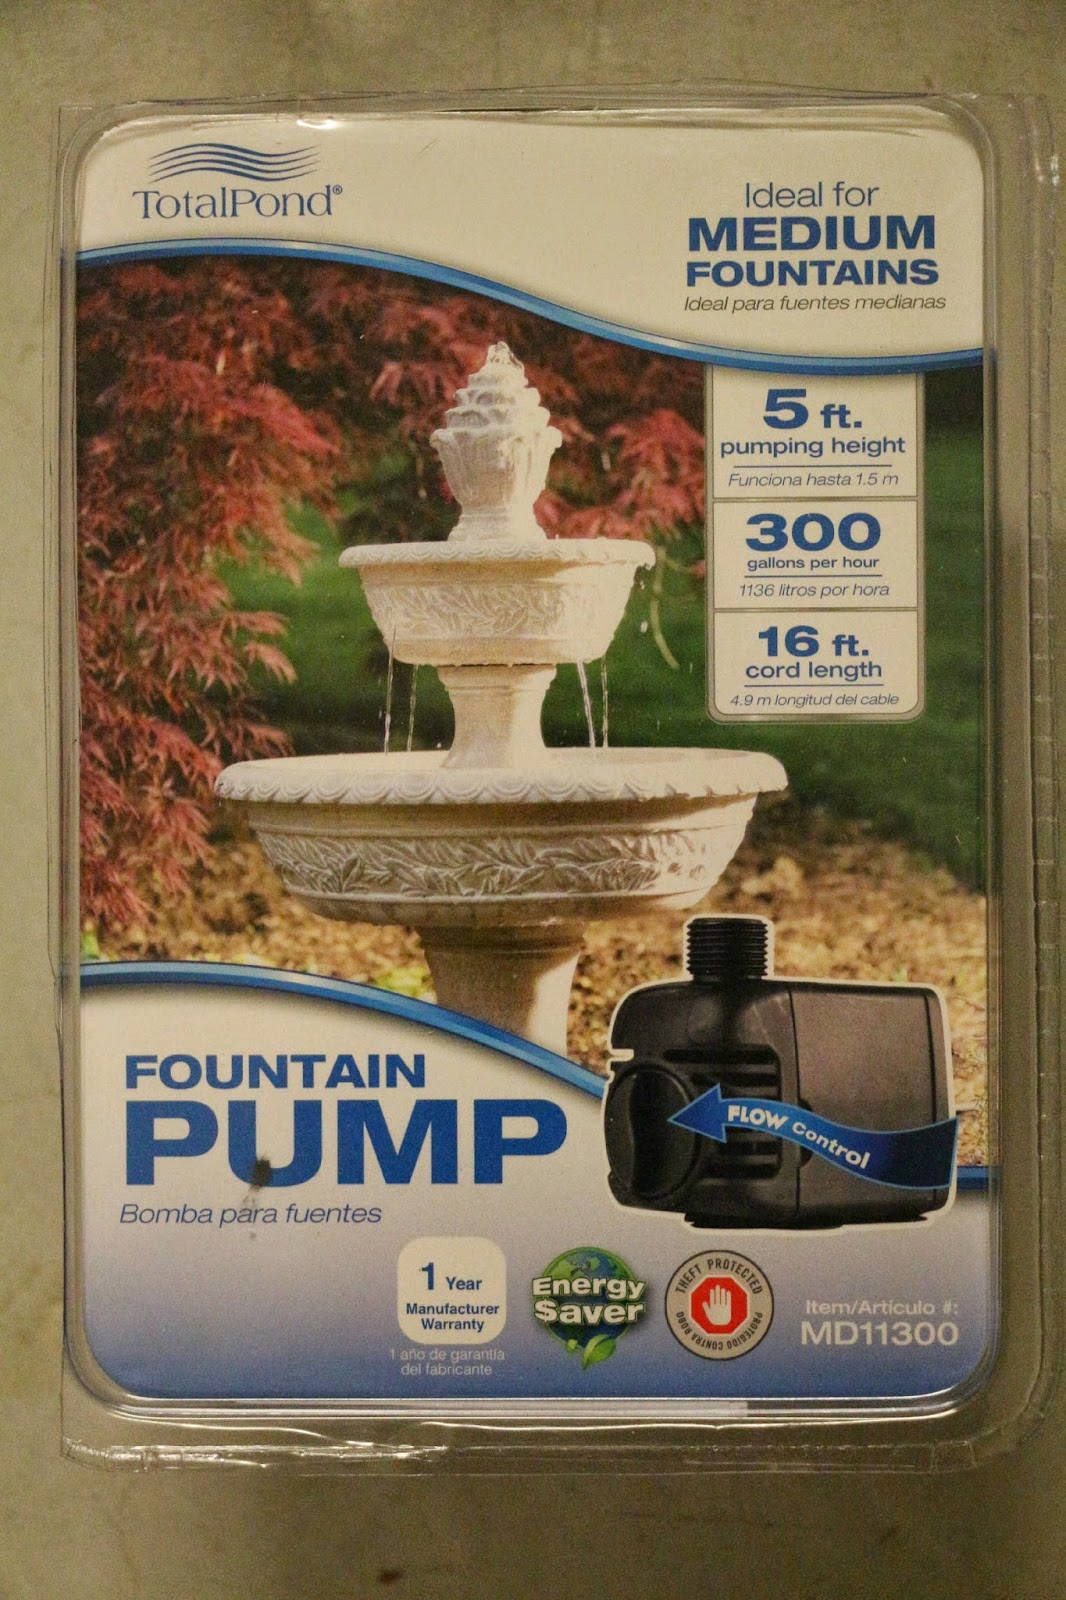 home depot garden fountain pump, fountain pump, home depot fountain pump